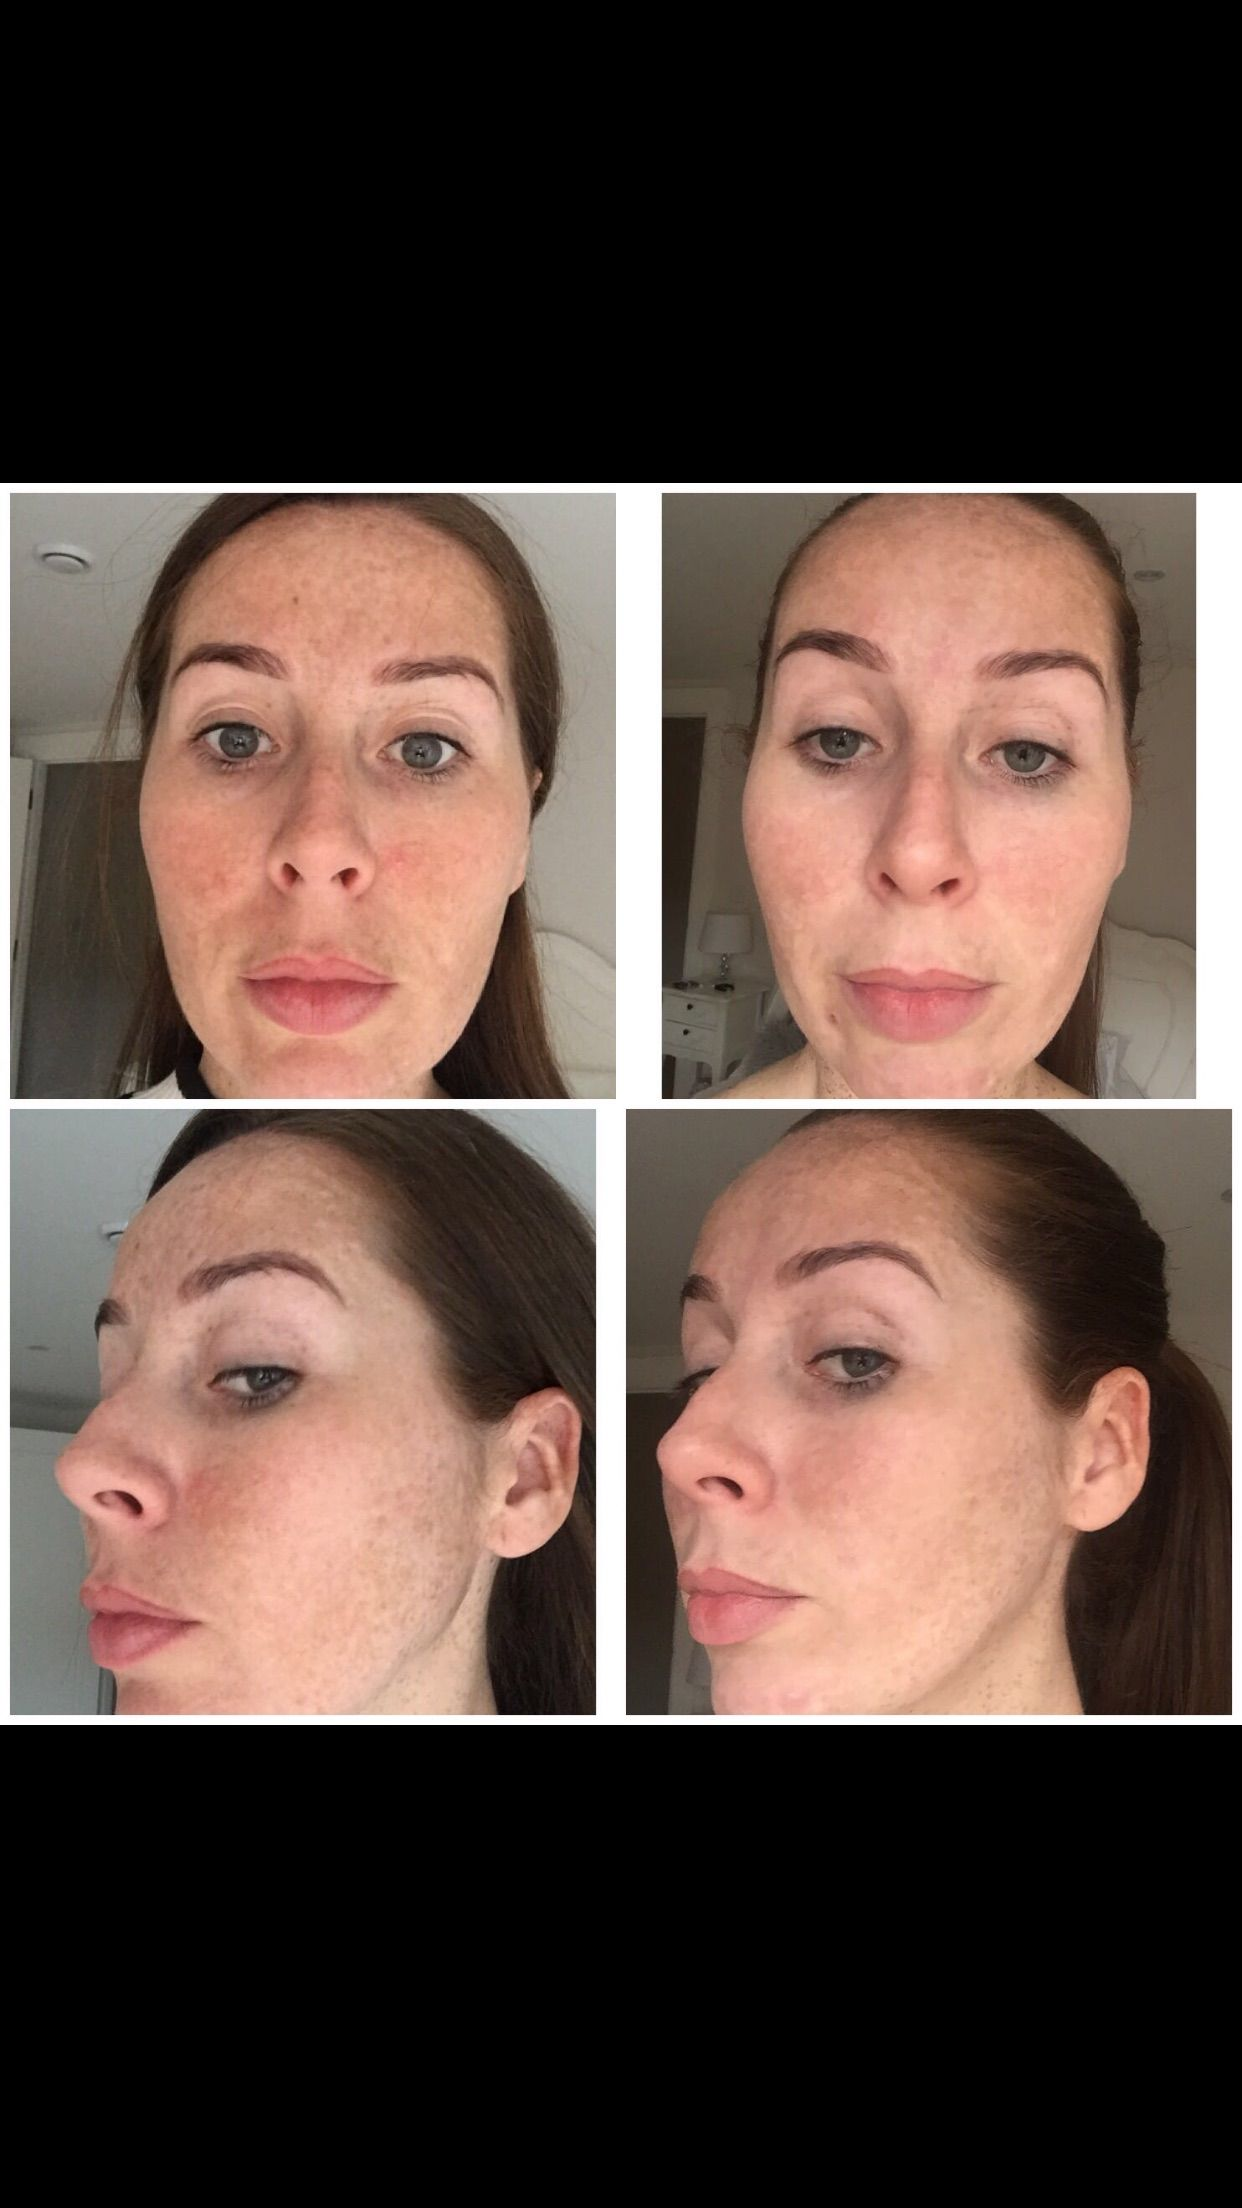 Freckle Removal Before And After Pulse Light Clinic London Using Picosure Laser Free Consultation Patch Pulse Light Laser Skin Treatment Skin Treatments